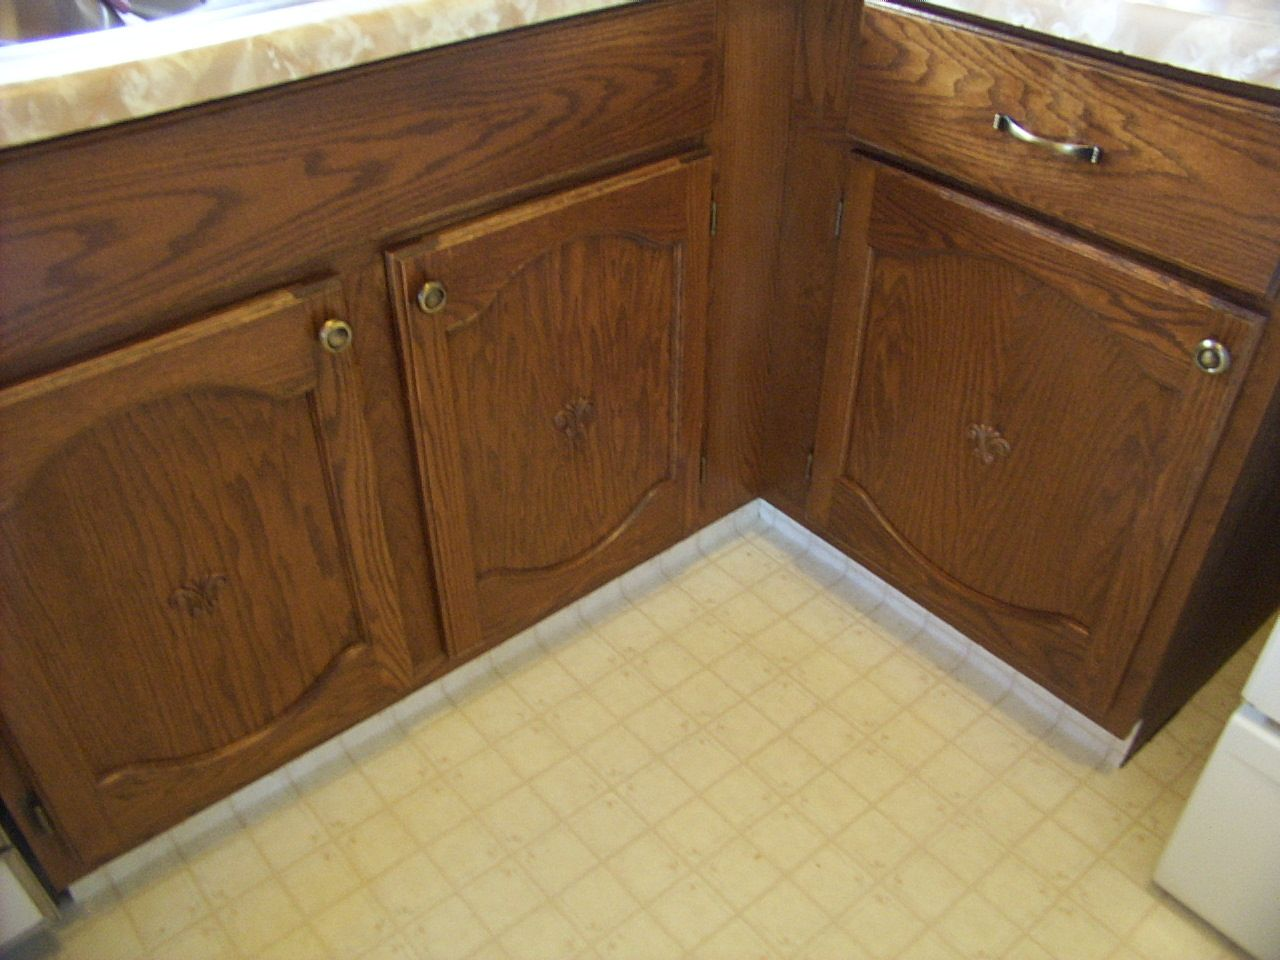 Kitchen refinished cabinet doors and drawers.